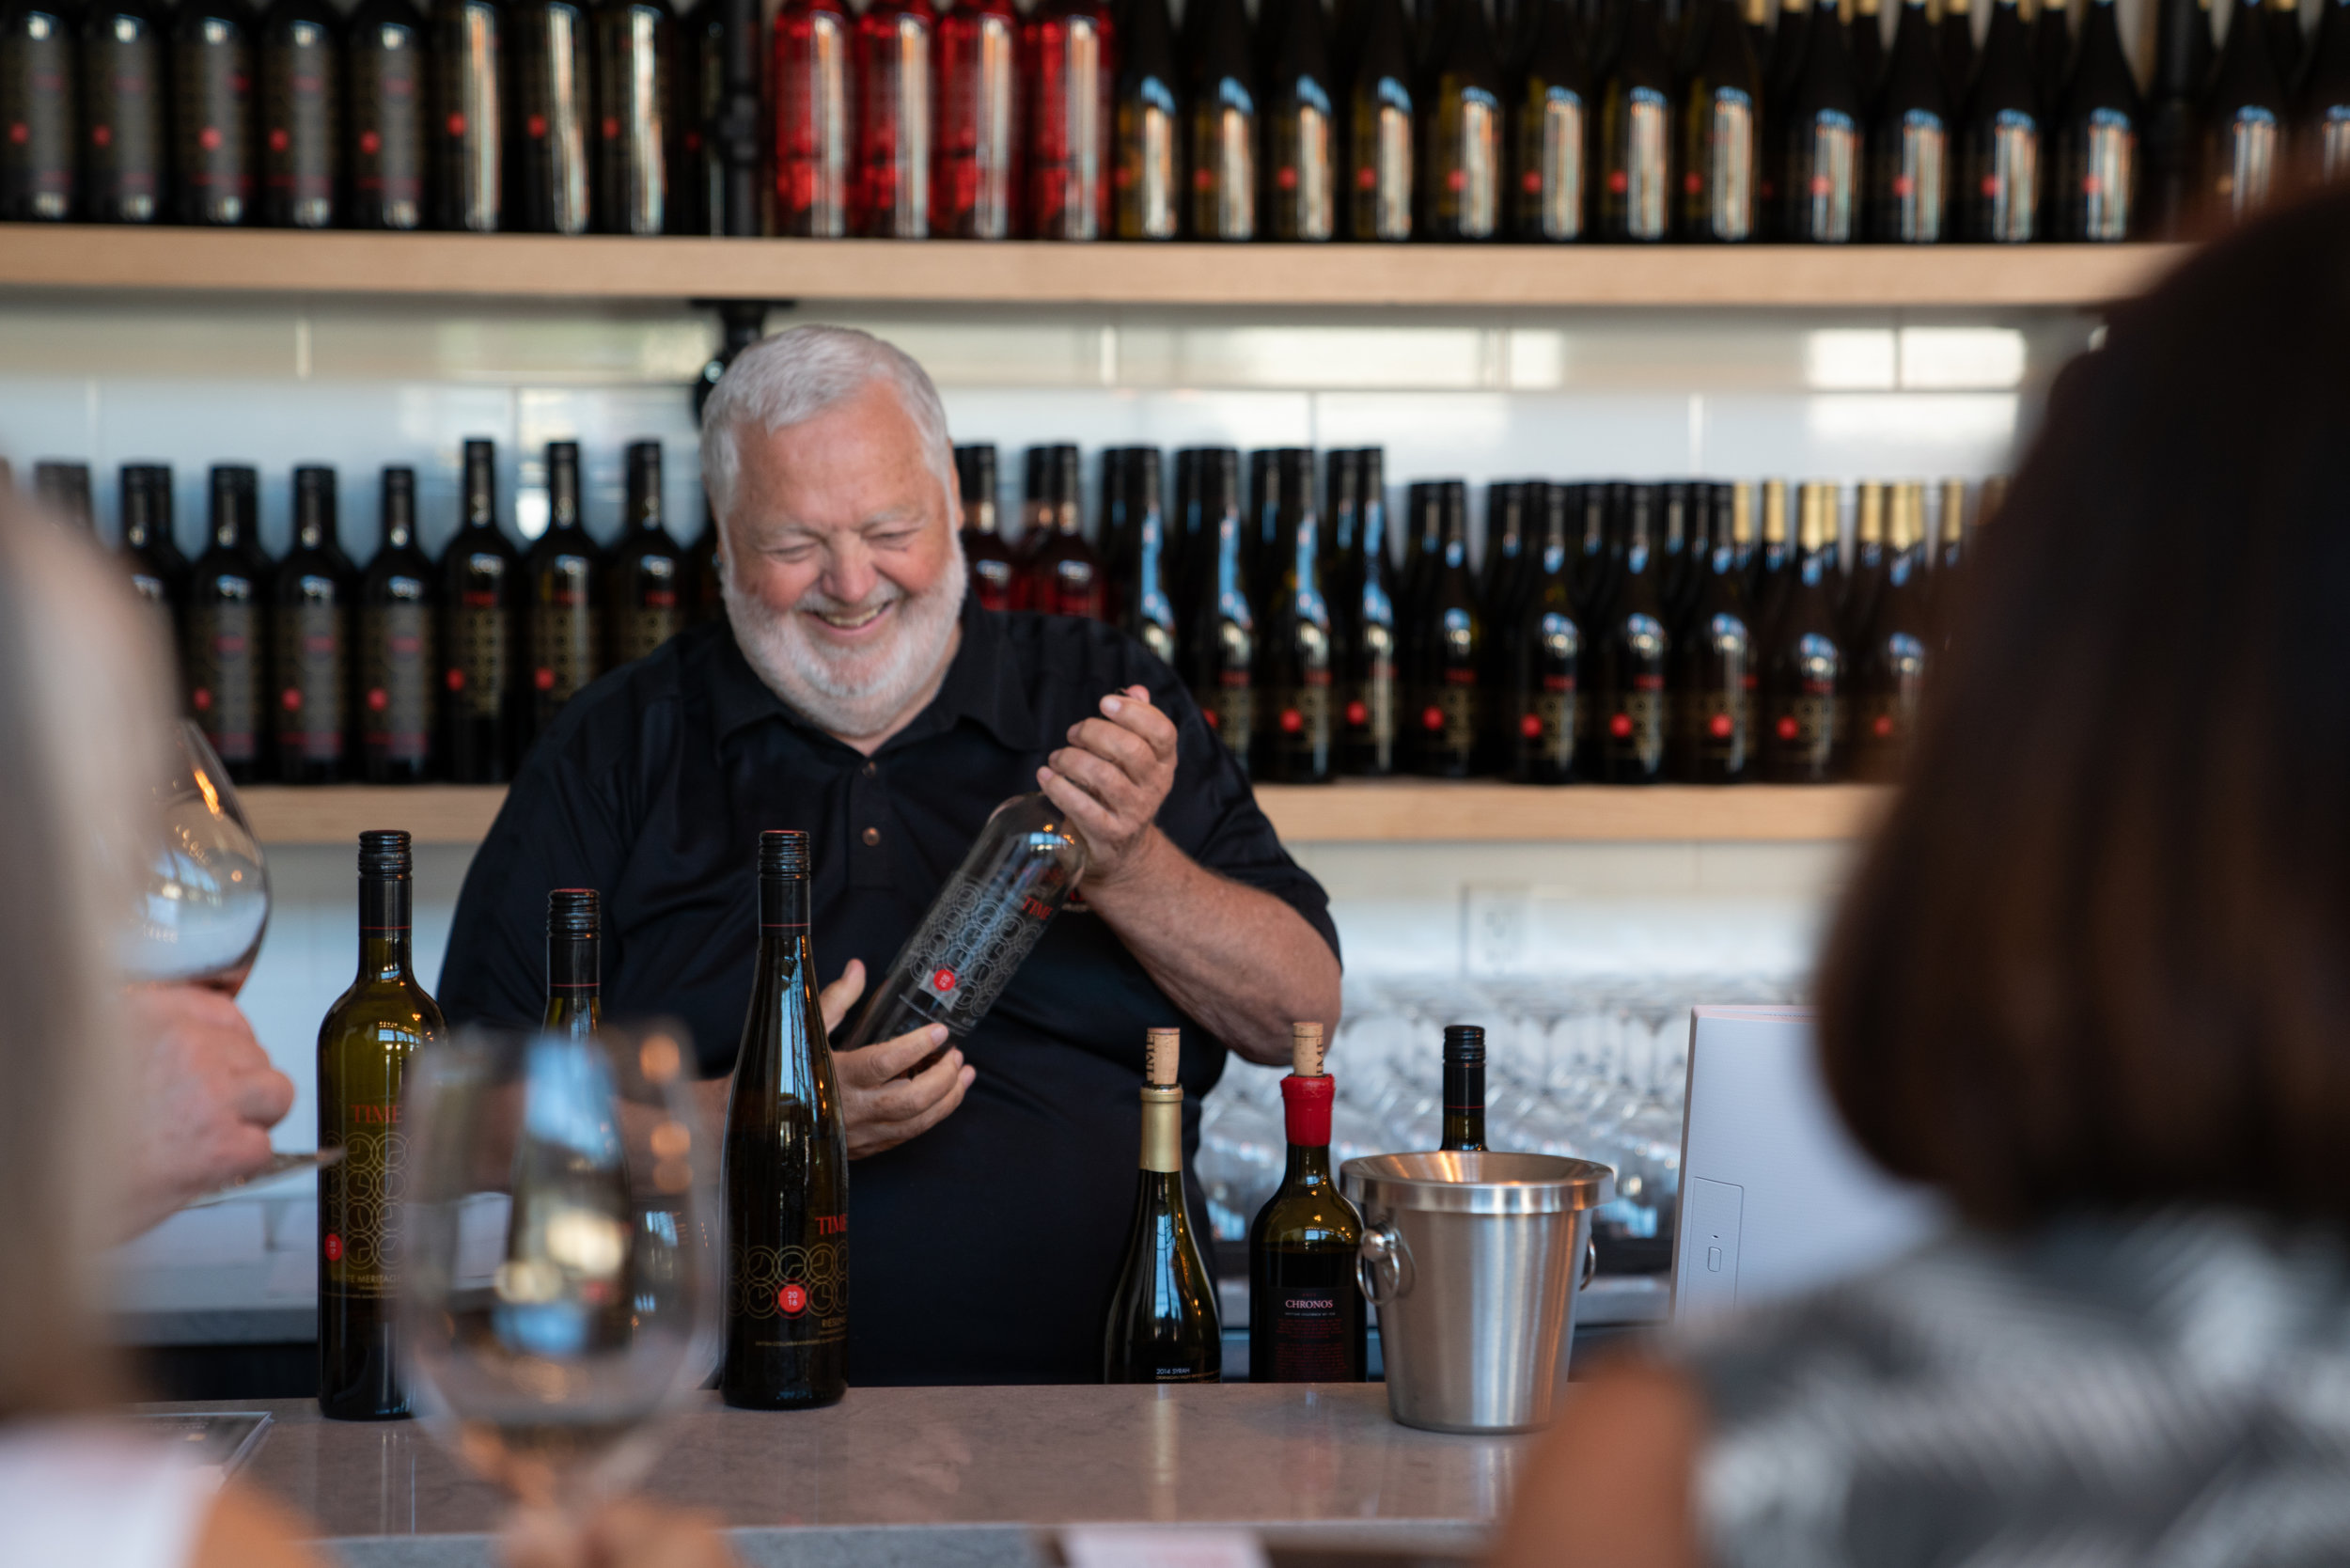 Harry McWatters in his element at TIME Winery - Chris Stenberg photo